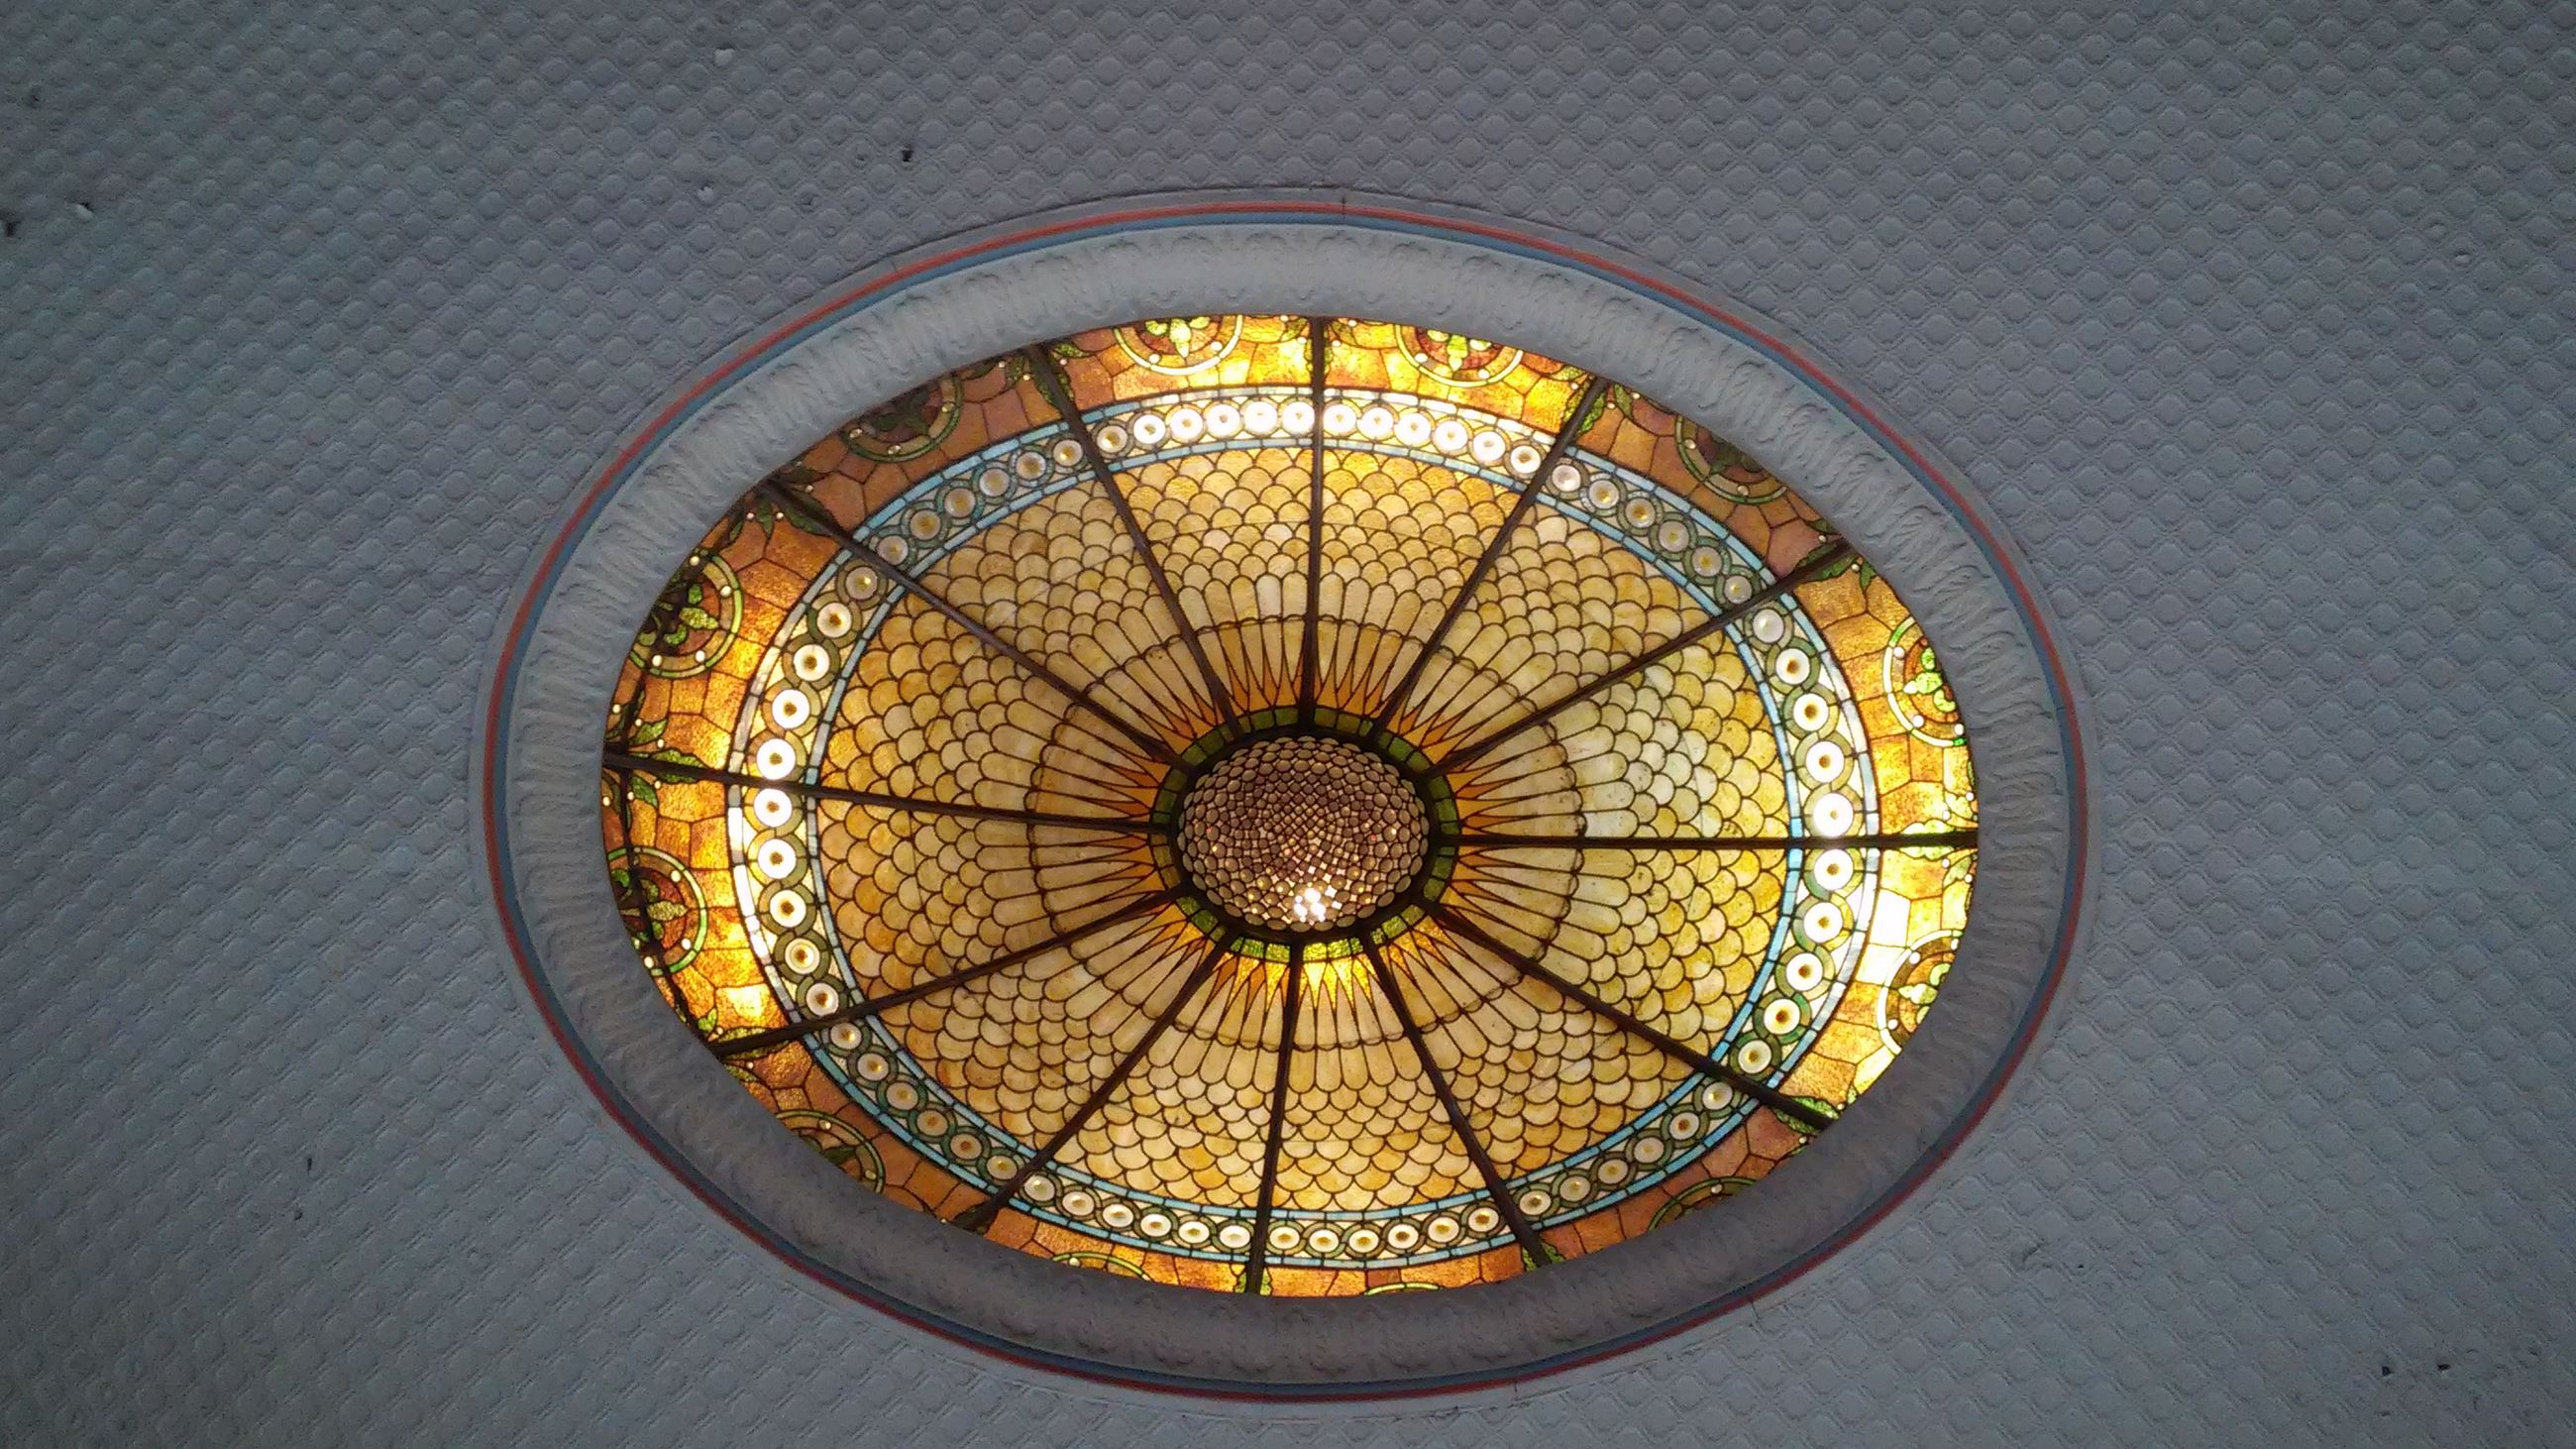 Ceiling Center in the Common Pleas Courtroom